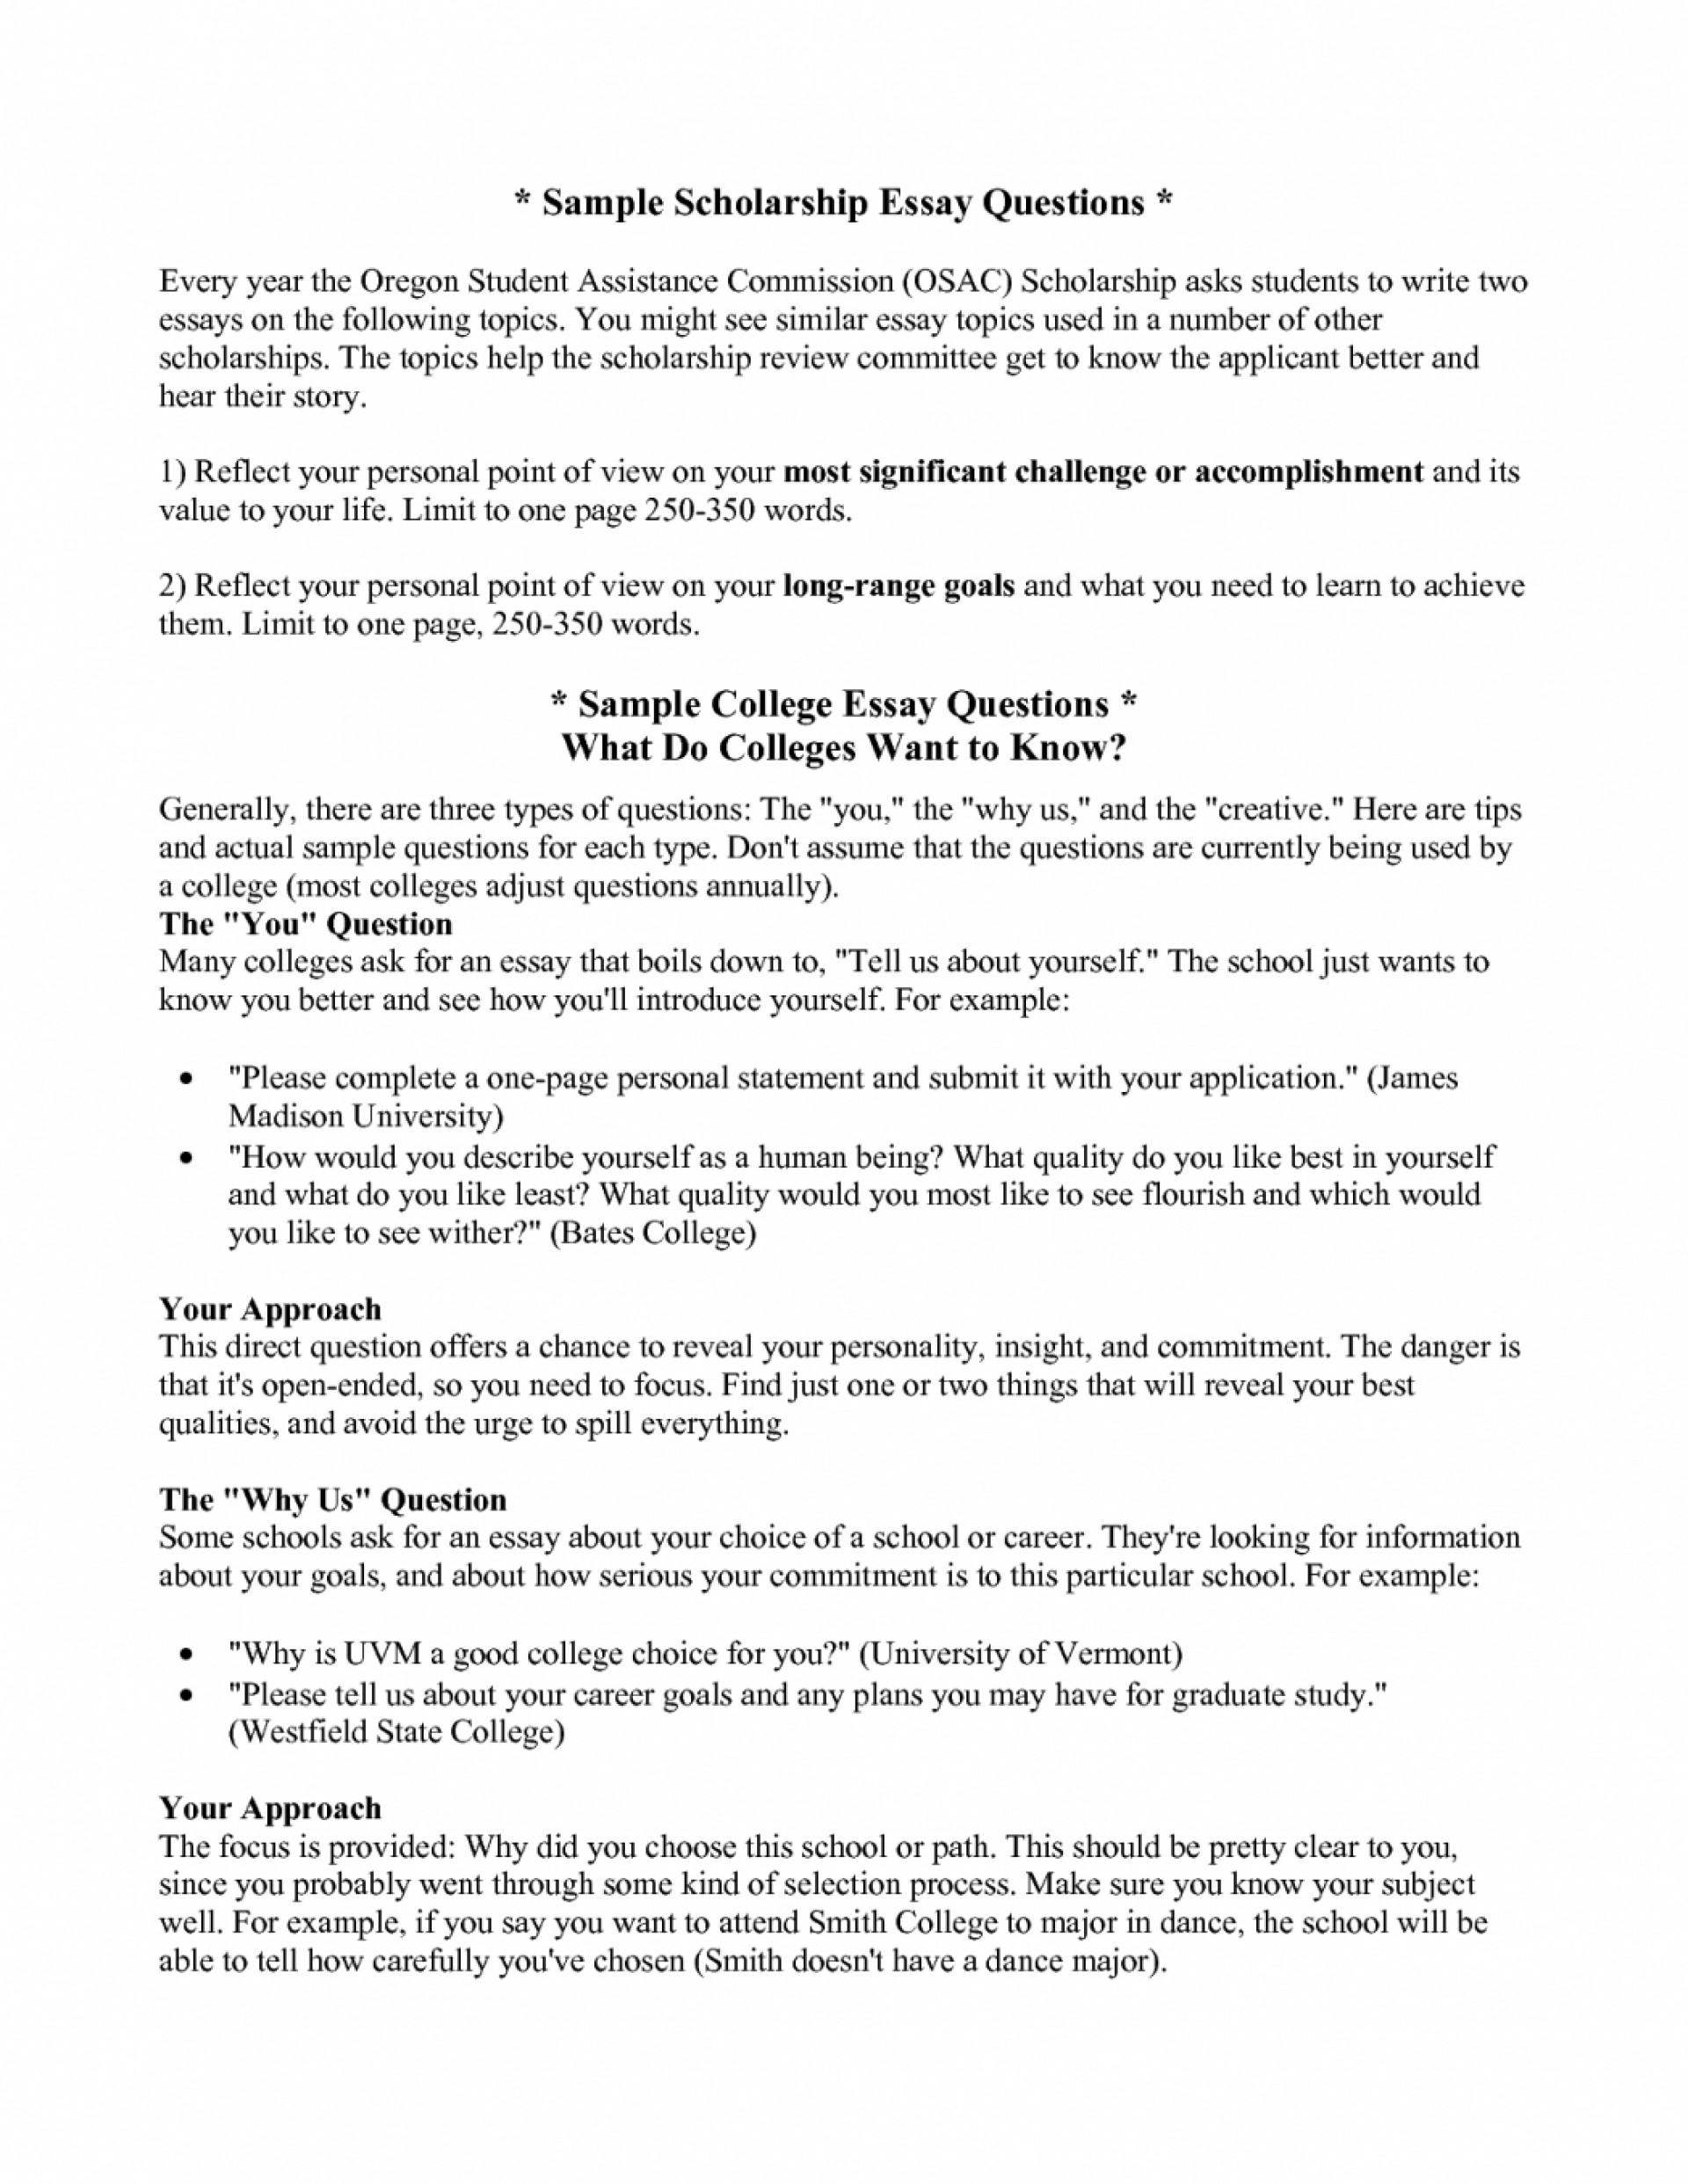 021 College Scholarships Essays Goal Blockety Co Winning Scholarship Application Format About Yourself Question 1048x1356 Stupendous Essay Examples Pdf 1920